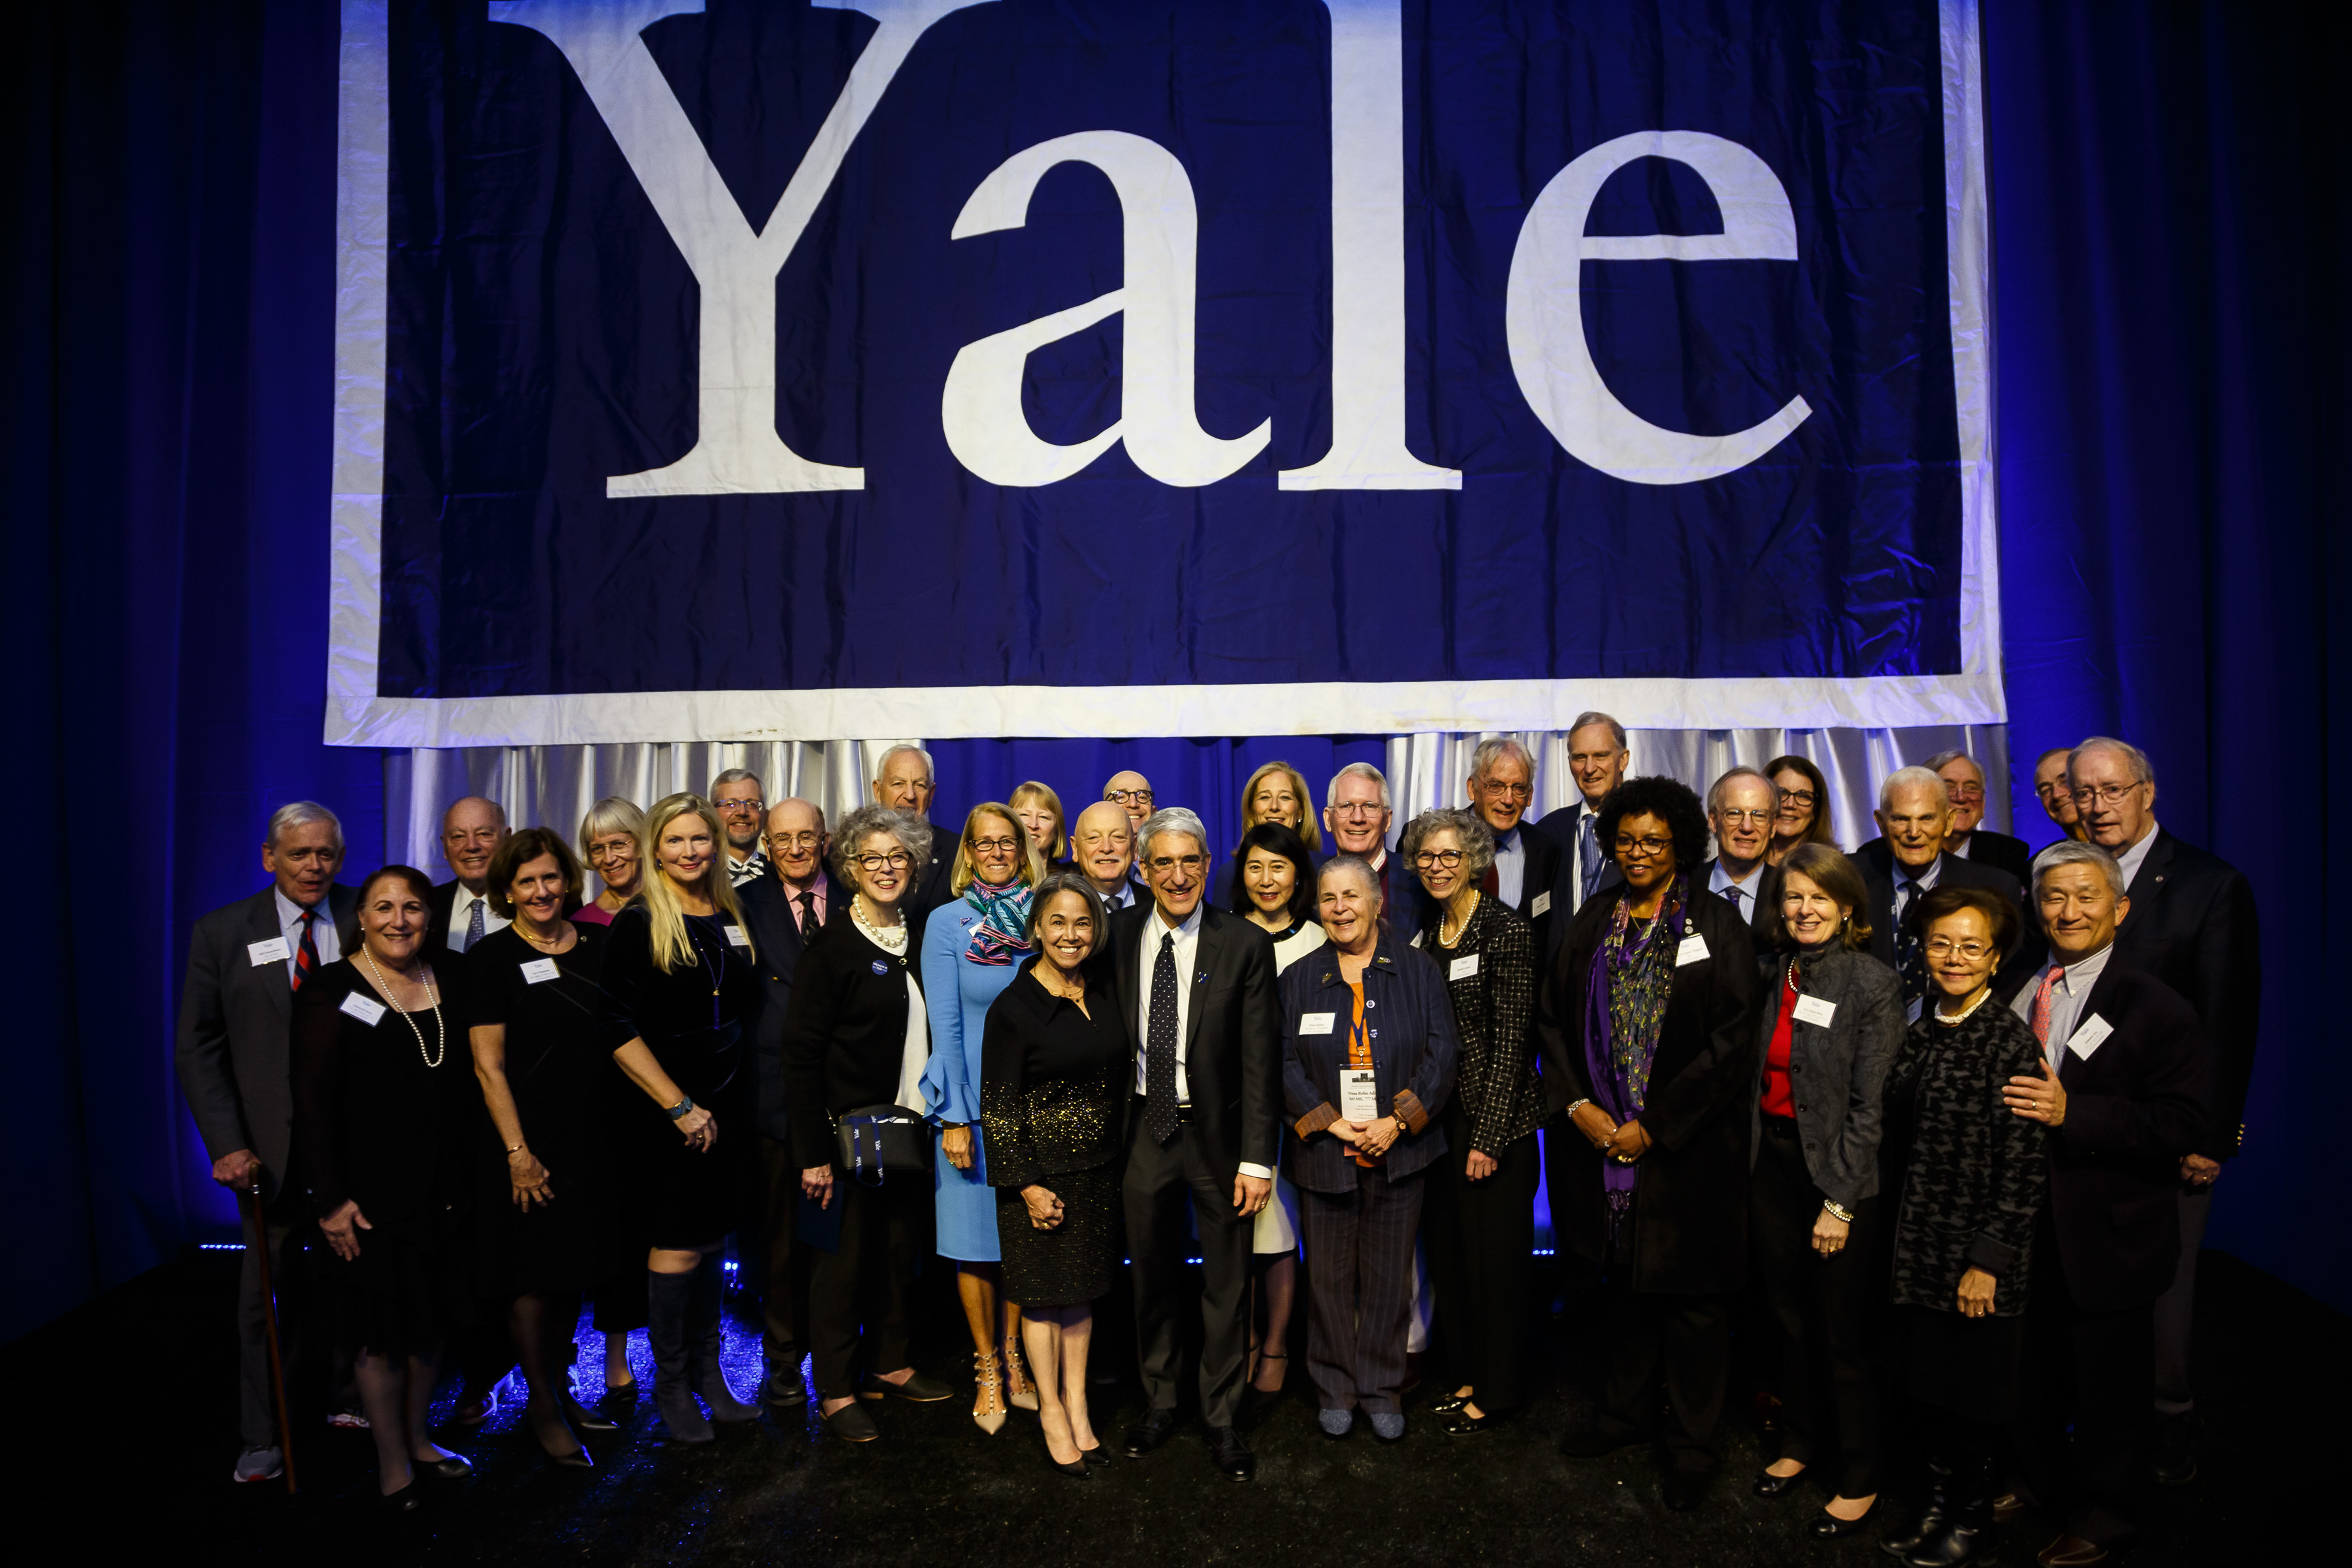 All Yale medalists in attendance at 2019 Assembly and Convocation gather for a group photo.